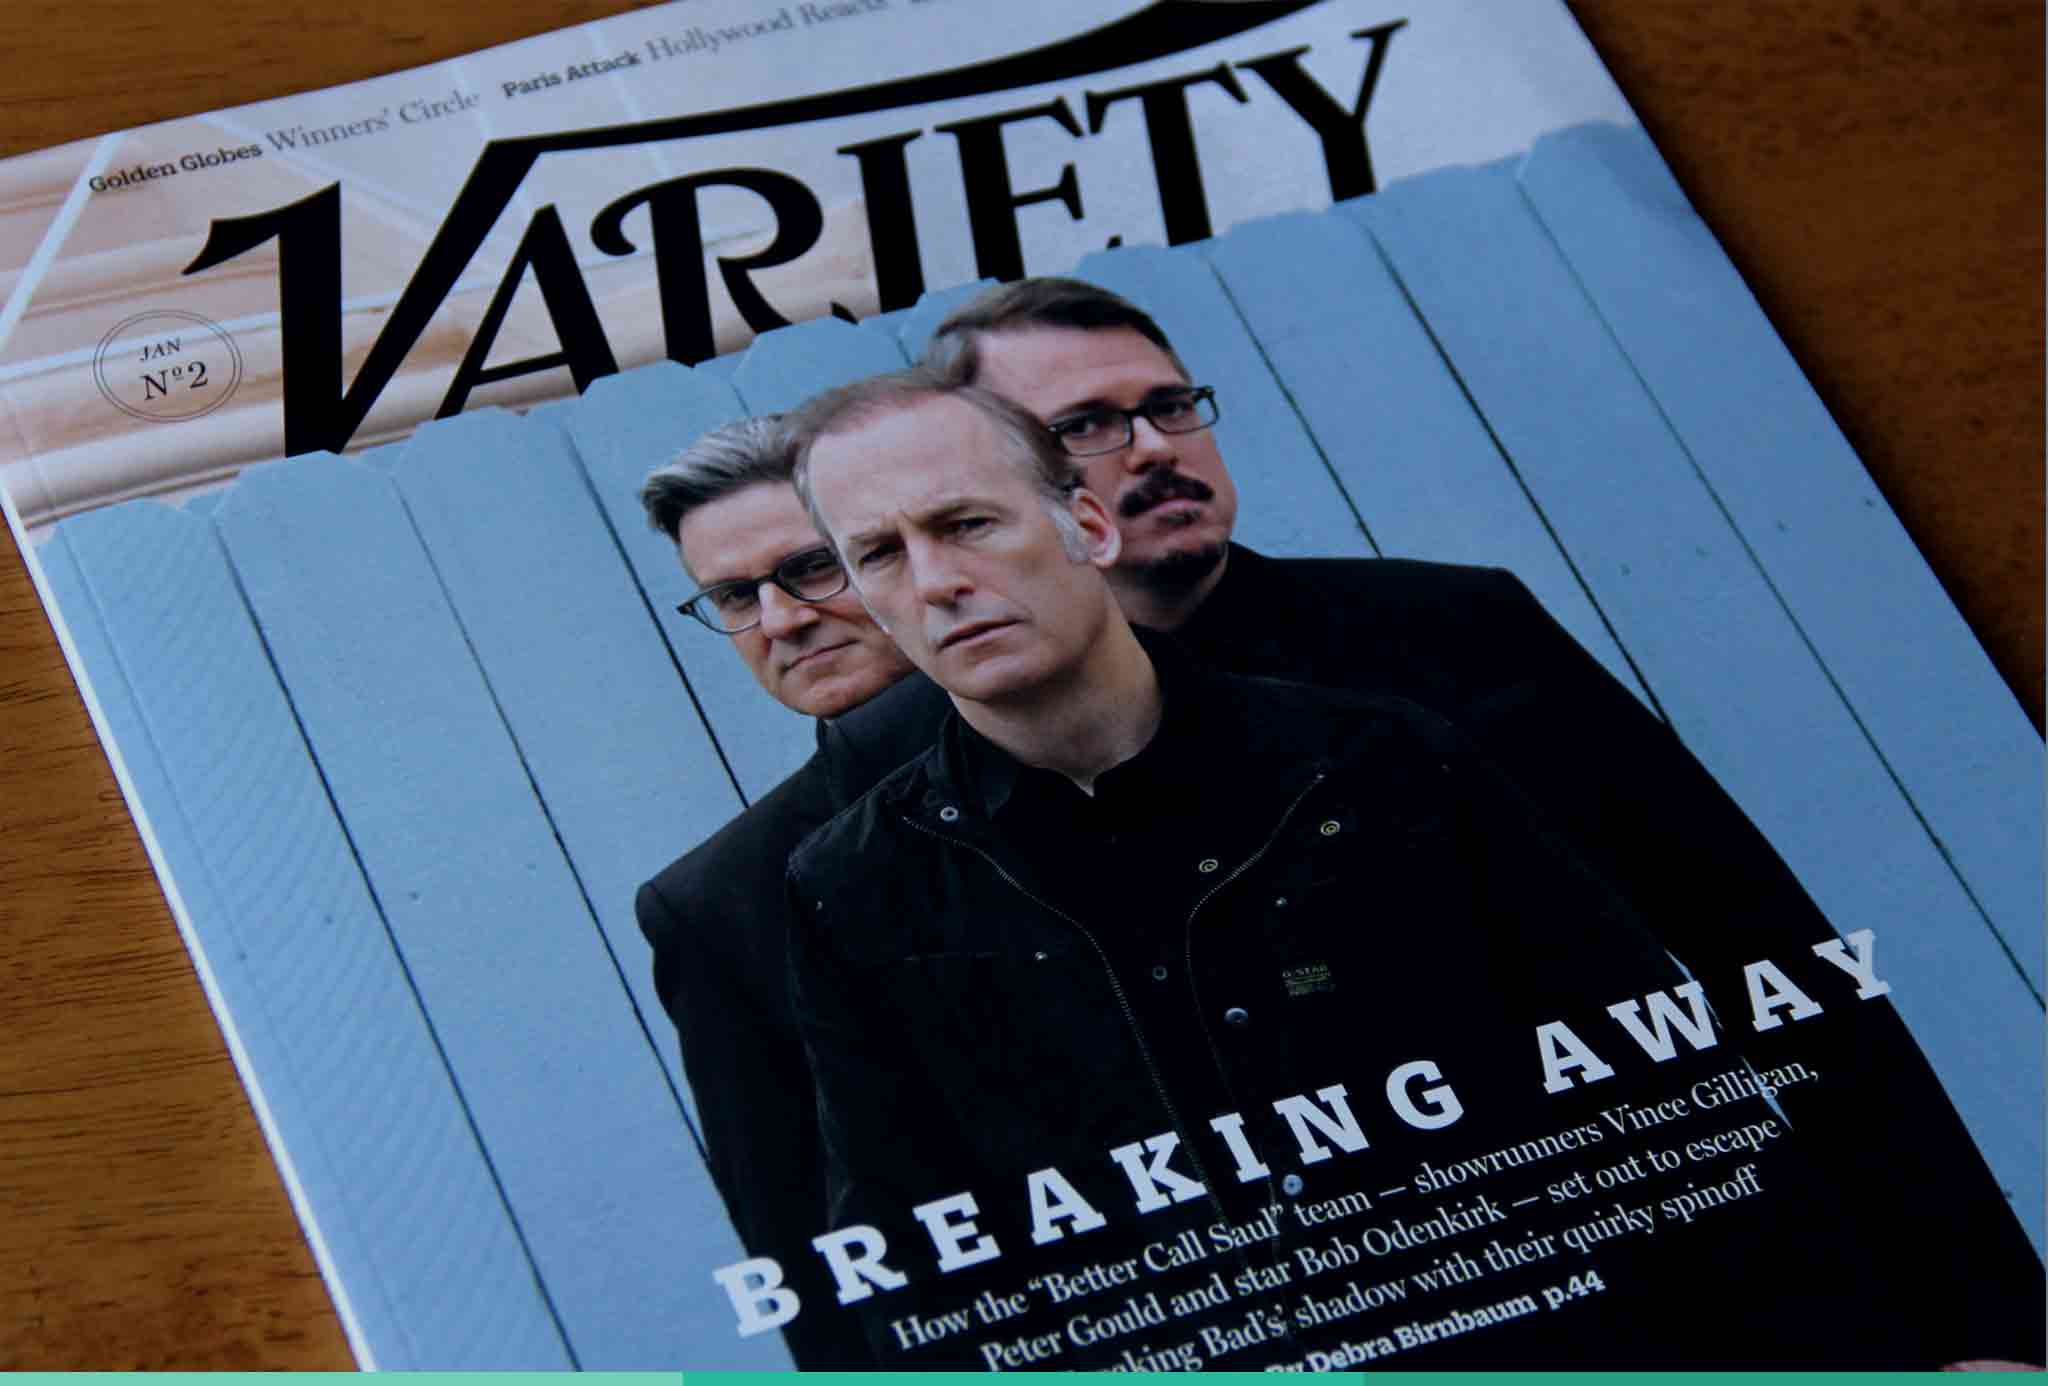 Variety stopped printing its daily magazine in 2013 but continues to capture the attention of influential Hollywood executives online